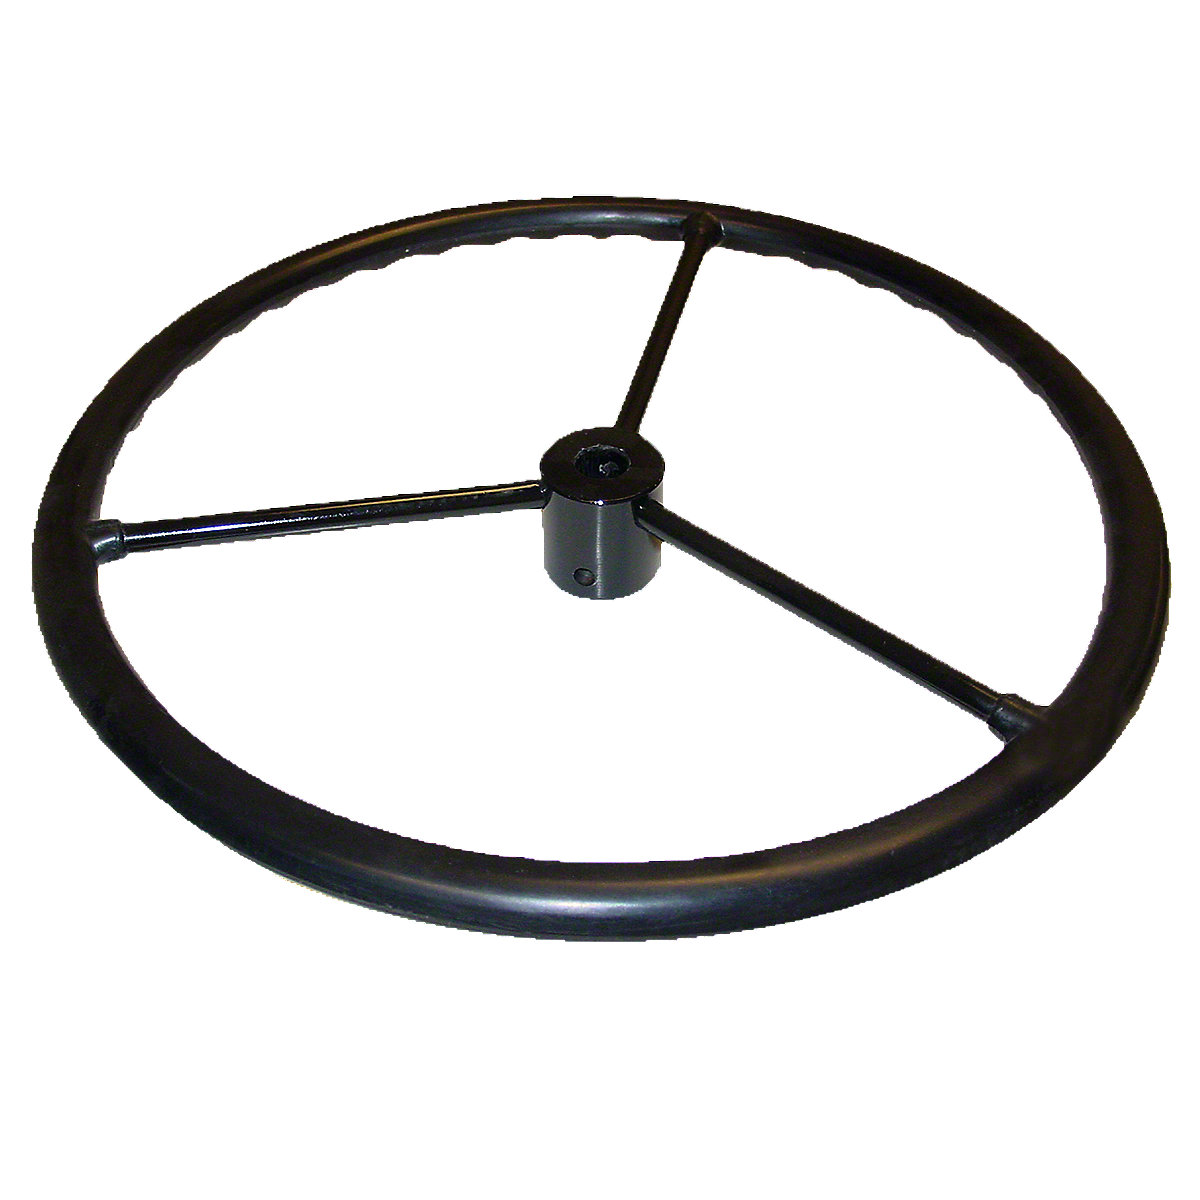 18 Three Spoke Steering Wheel For Allis Chalmers: D14, D17, RC, WC, WD, WD45.